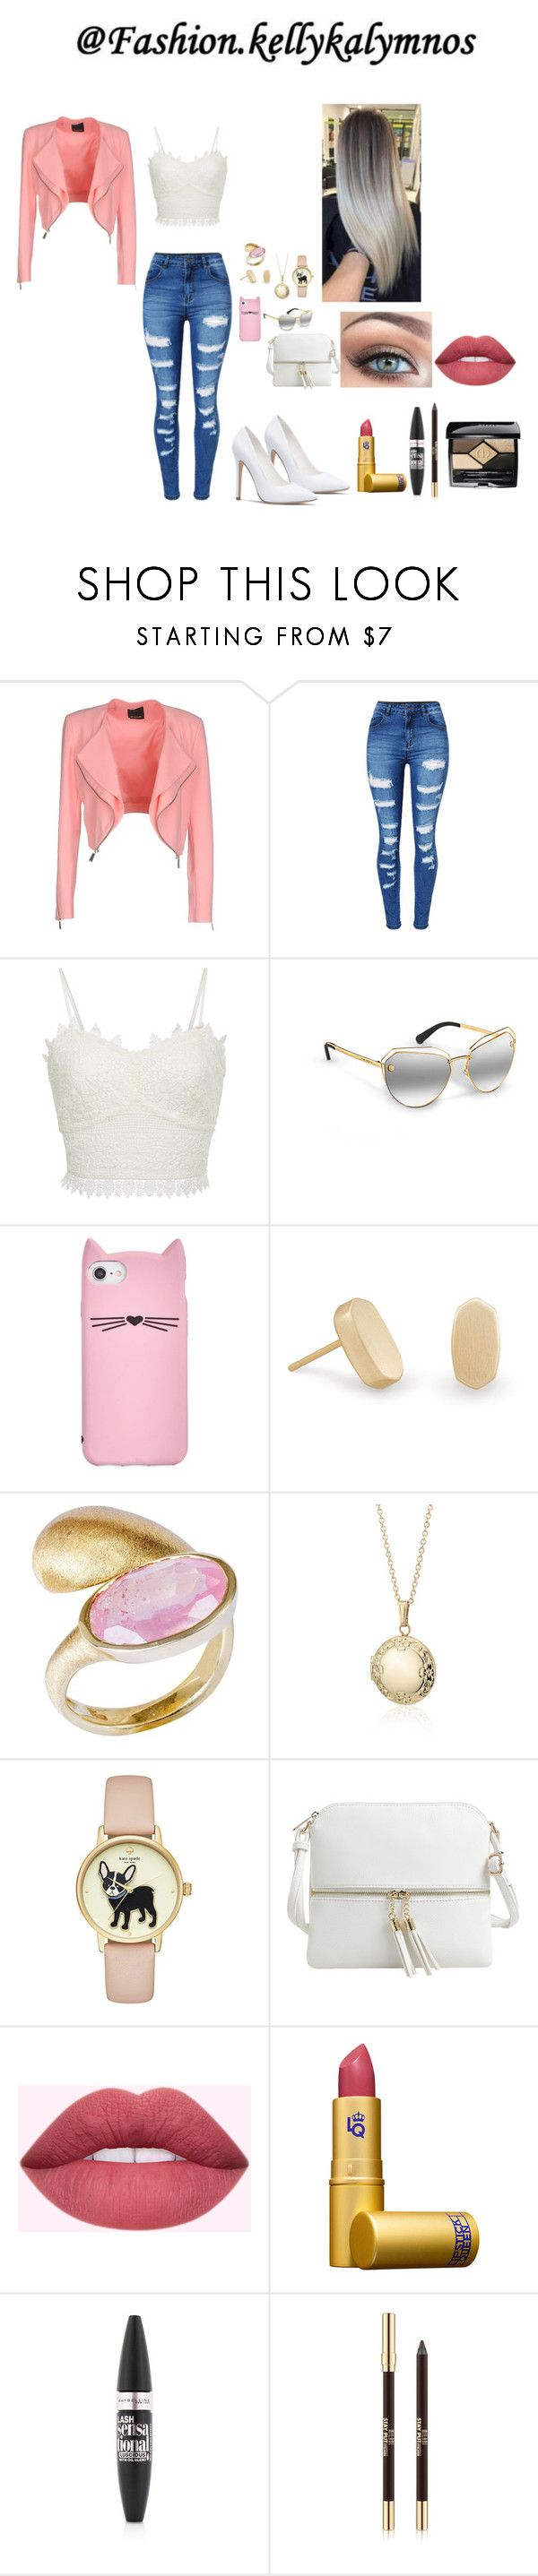 """""""March 2018"""" by fashion-kellykalymnos on Polyvore featuring Pinko, WithChic, Kate Spade, Kendra Scott, Yvel, Blue Nile, Epic Chic, Lipstick Queen, Maybelline and Christian Dior"""